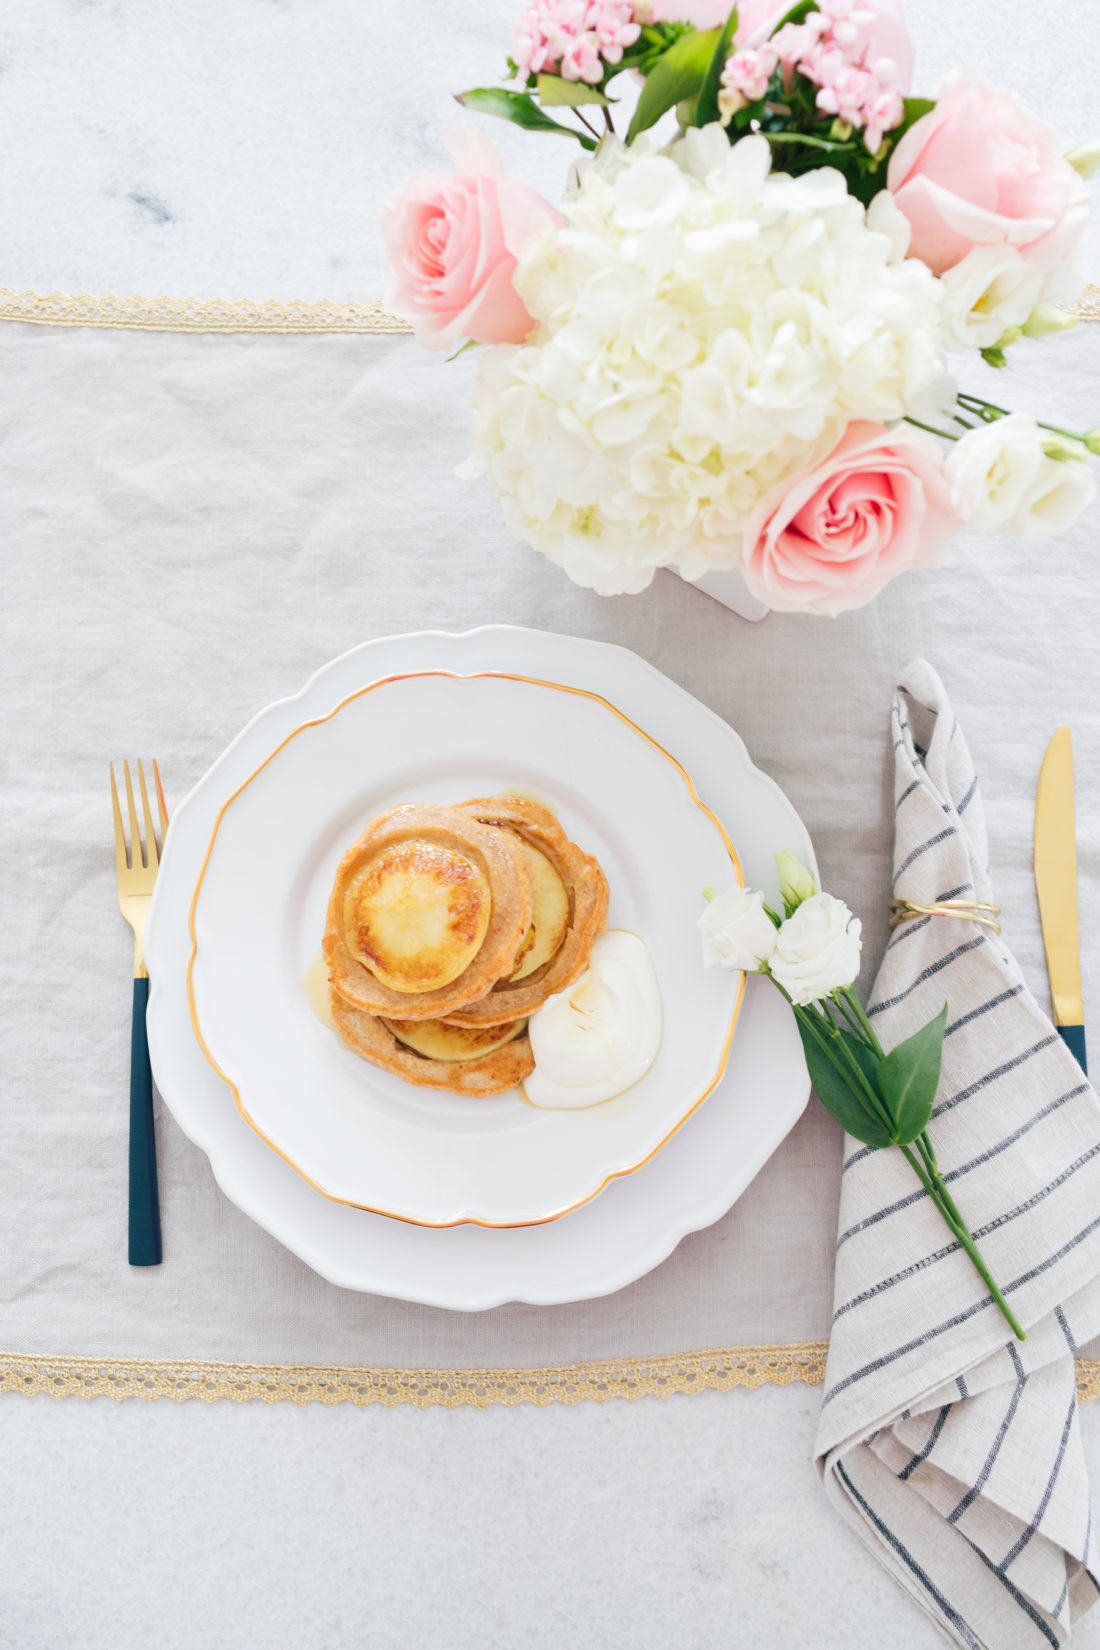 Eva Amurri Martino of Happily Eva After shares her recipe for Glow Pancakes for Mother's Day Brunch